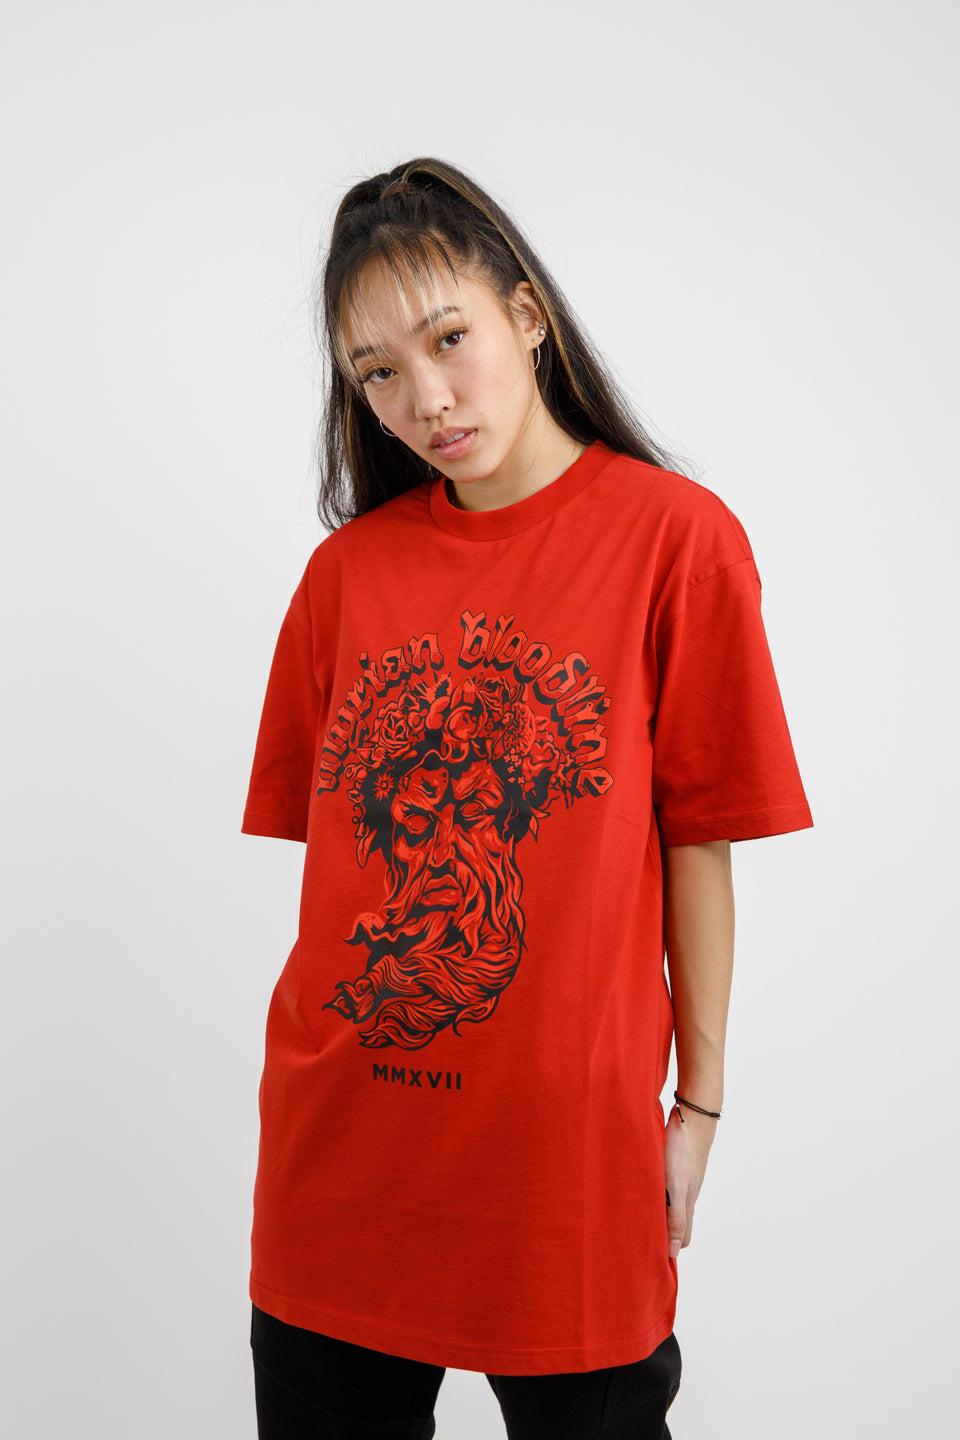 Illyrian God T-shirt - Blood Red